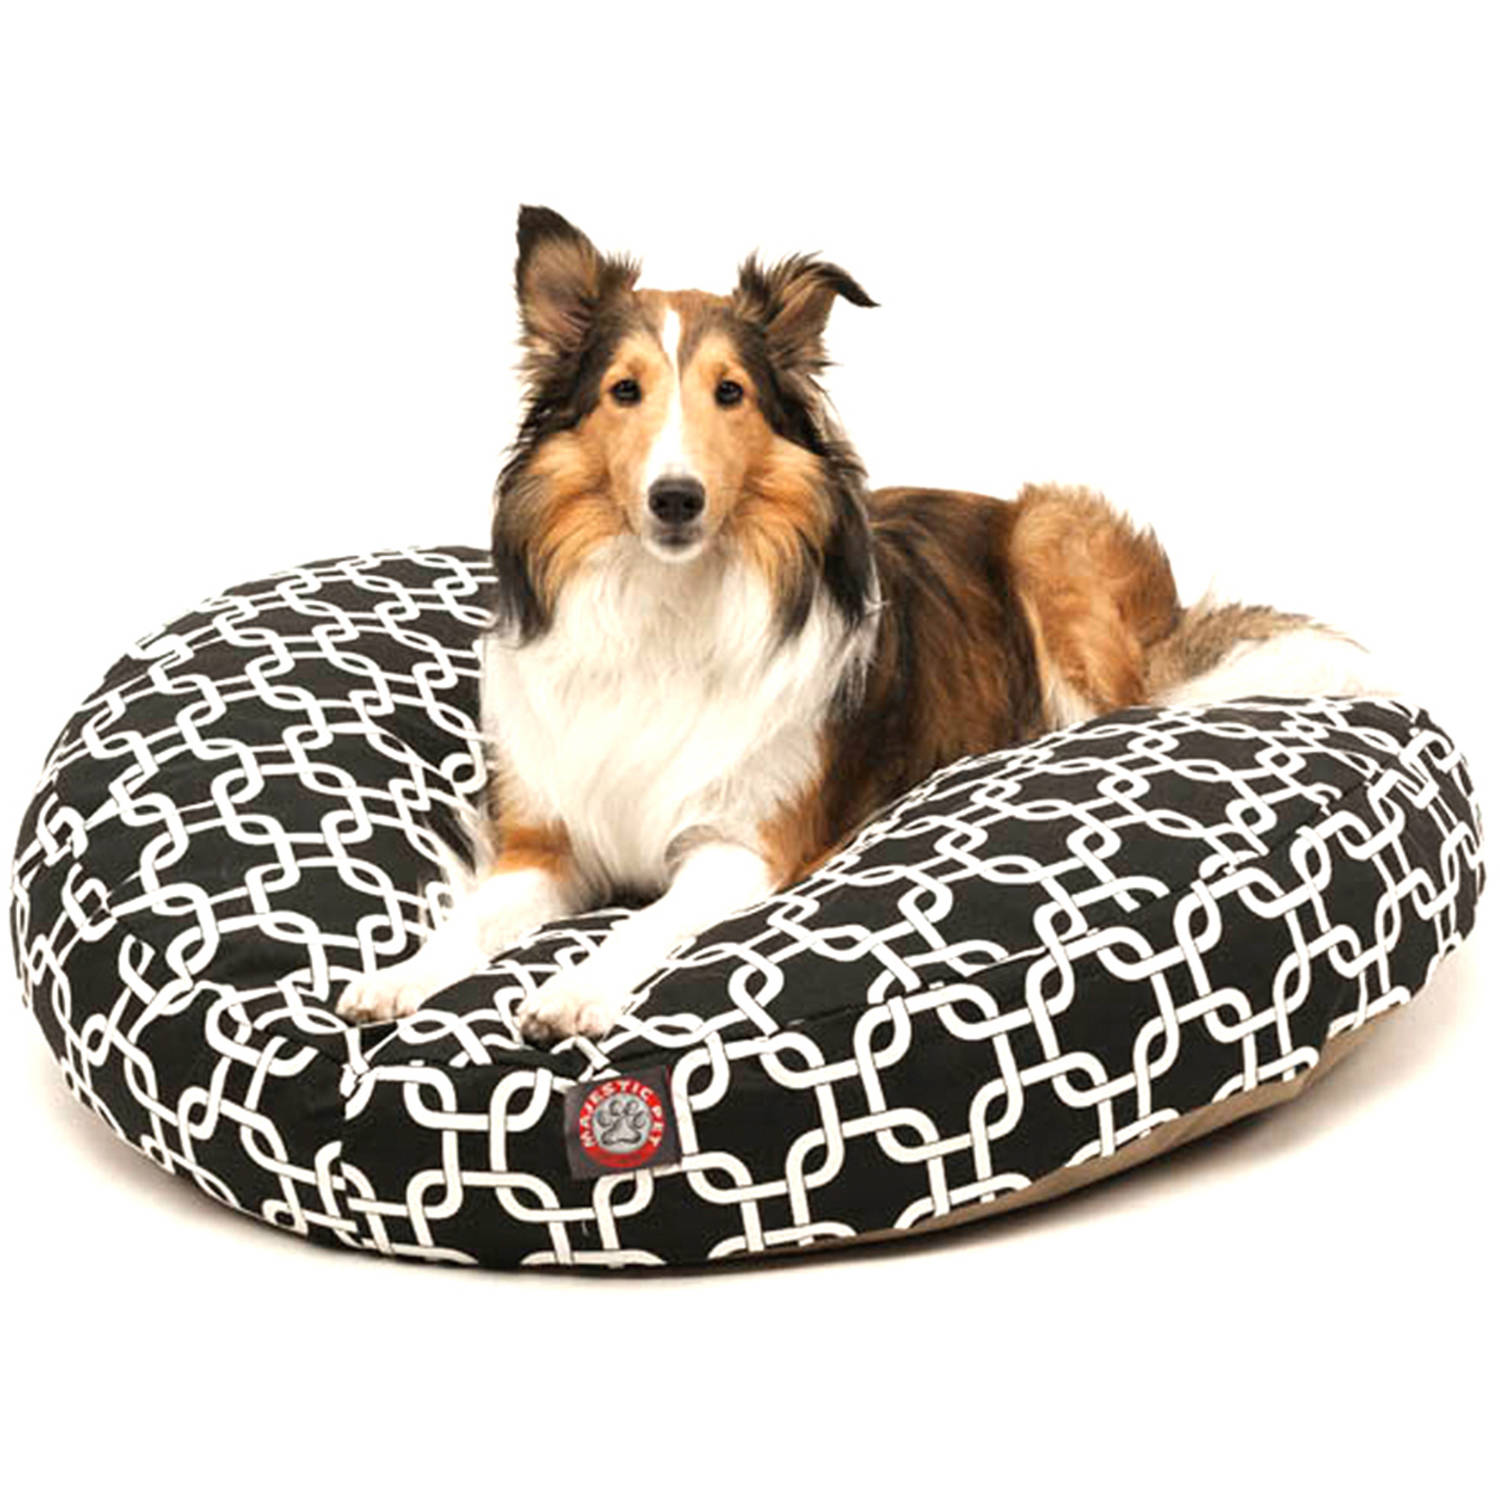 Majestic Pet Links Large Round Outdoor Indoor Pet Bed Removable Cover